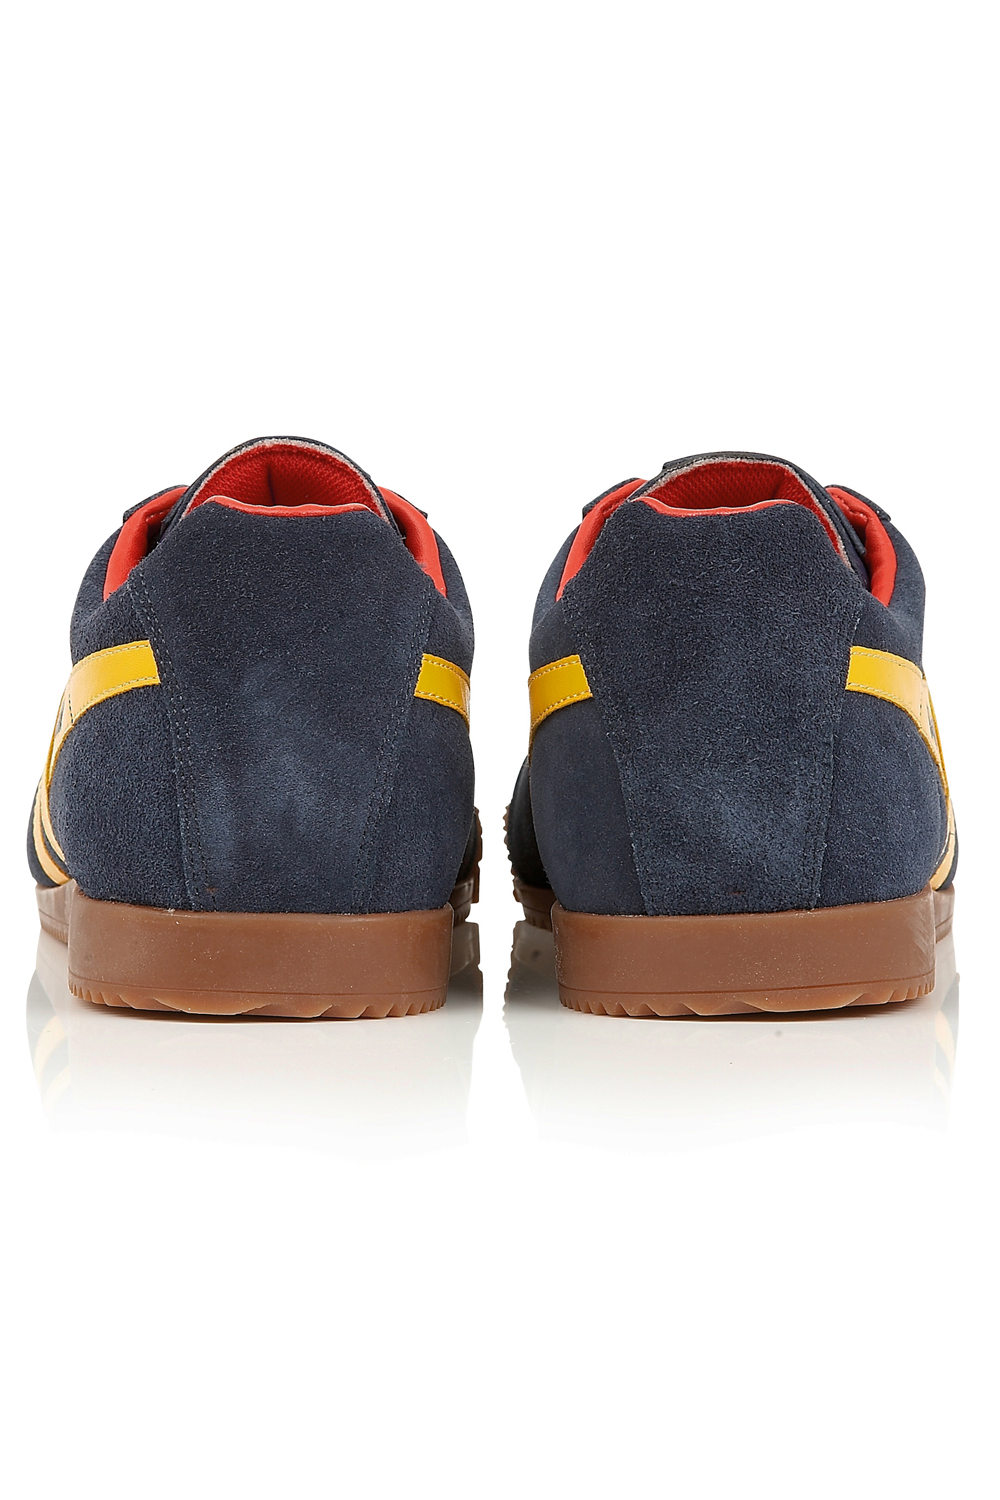 thumbnail 14 - Gola Harrier Suede Classic Vintage Lace-Up Sneakers Mens Trainers Low Top Shoes